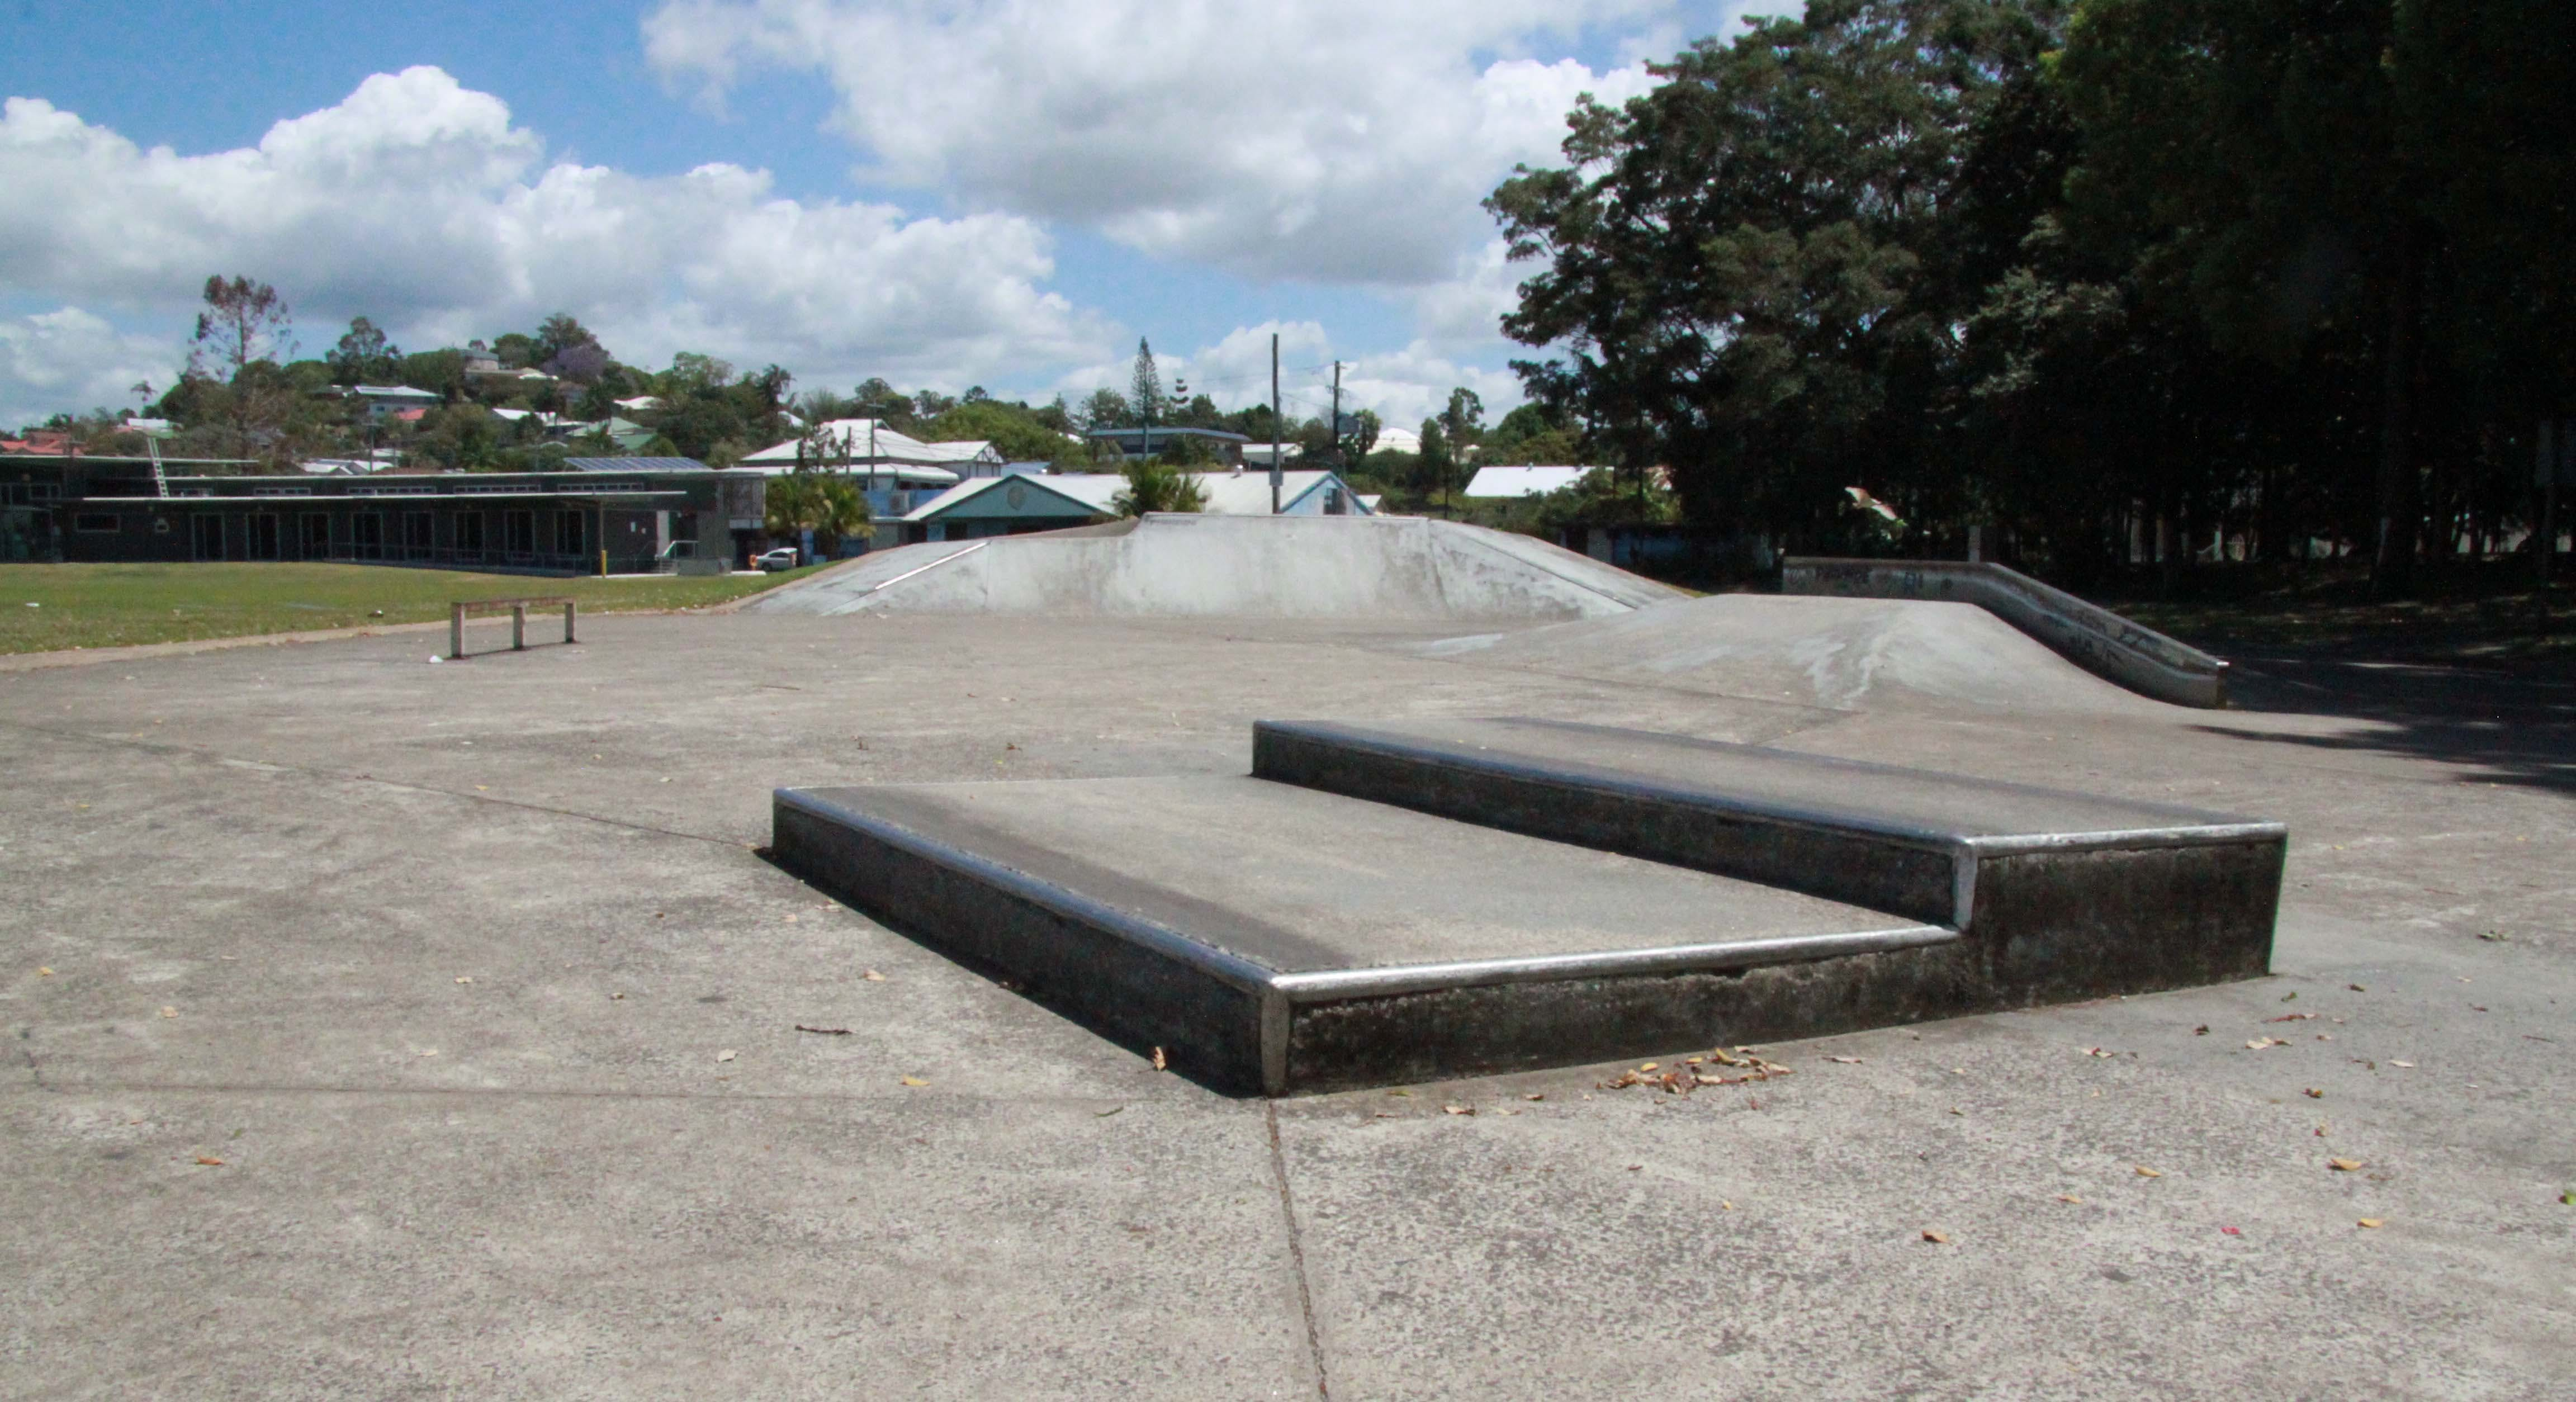 A youth precinct skate plaza will replace the dated skate facility.